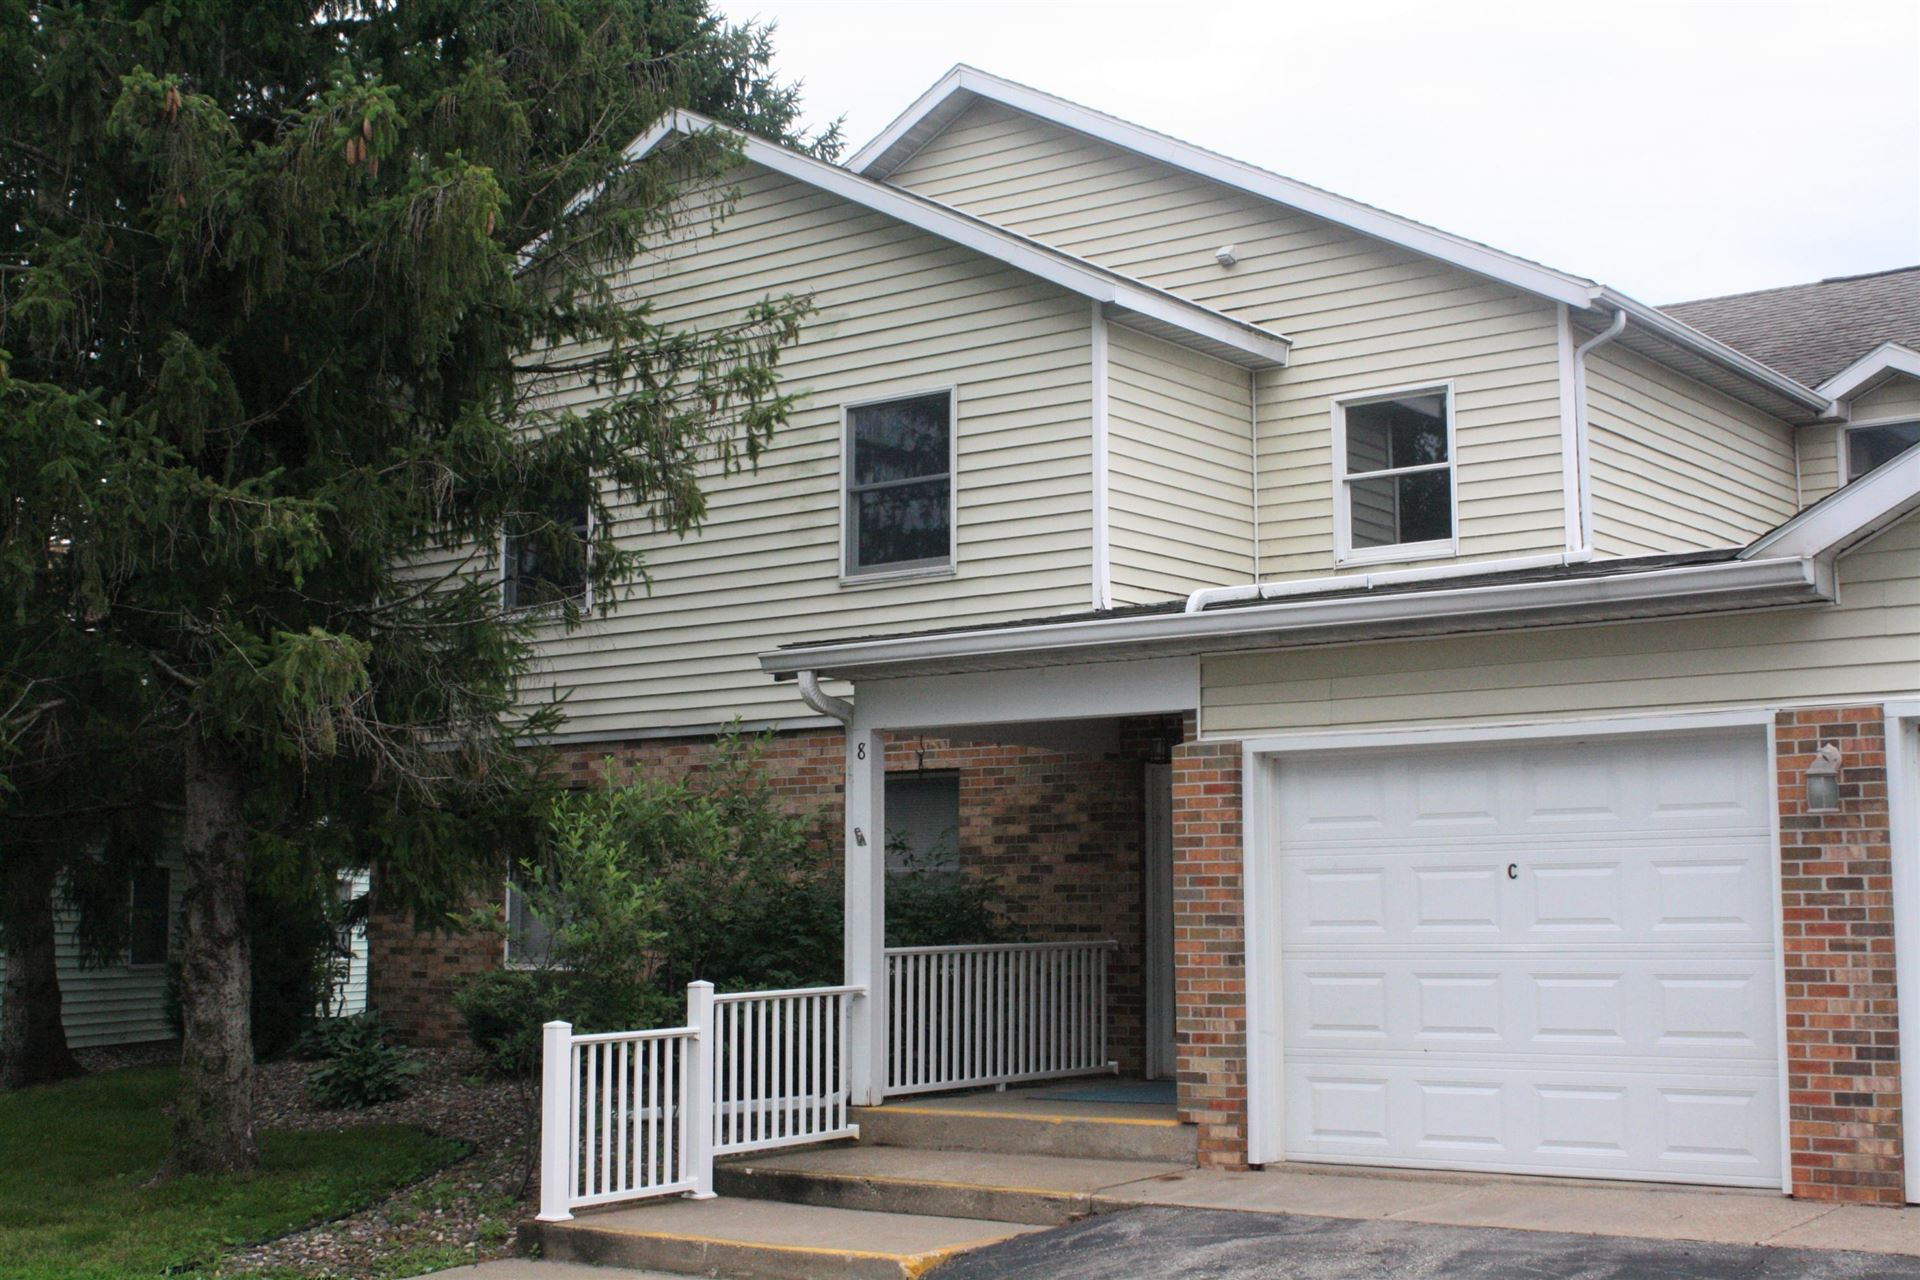 3536 East Ave S #C-8, La Crosse, WI 54601 - MLS#: 1699214